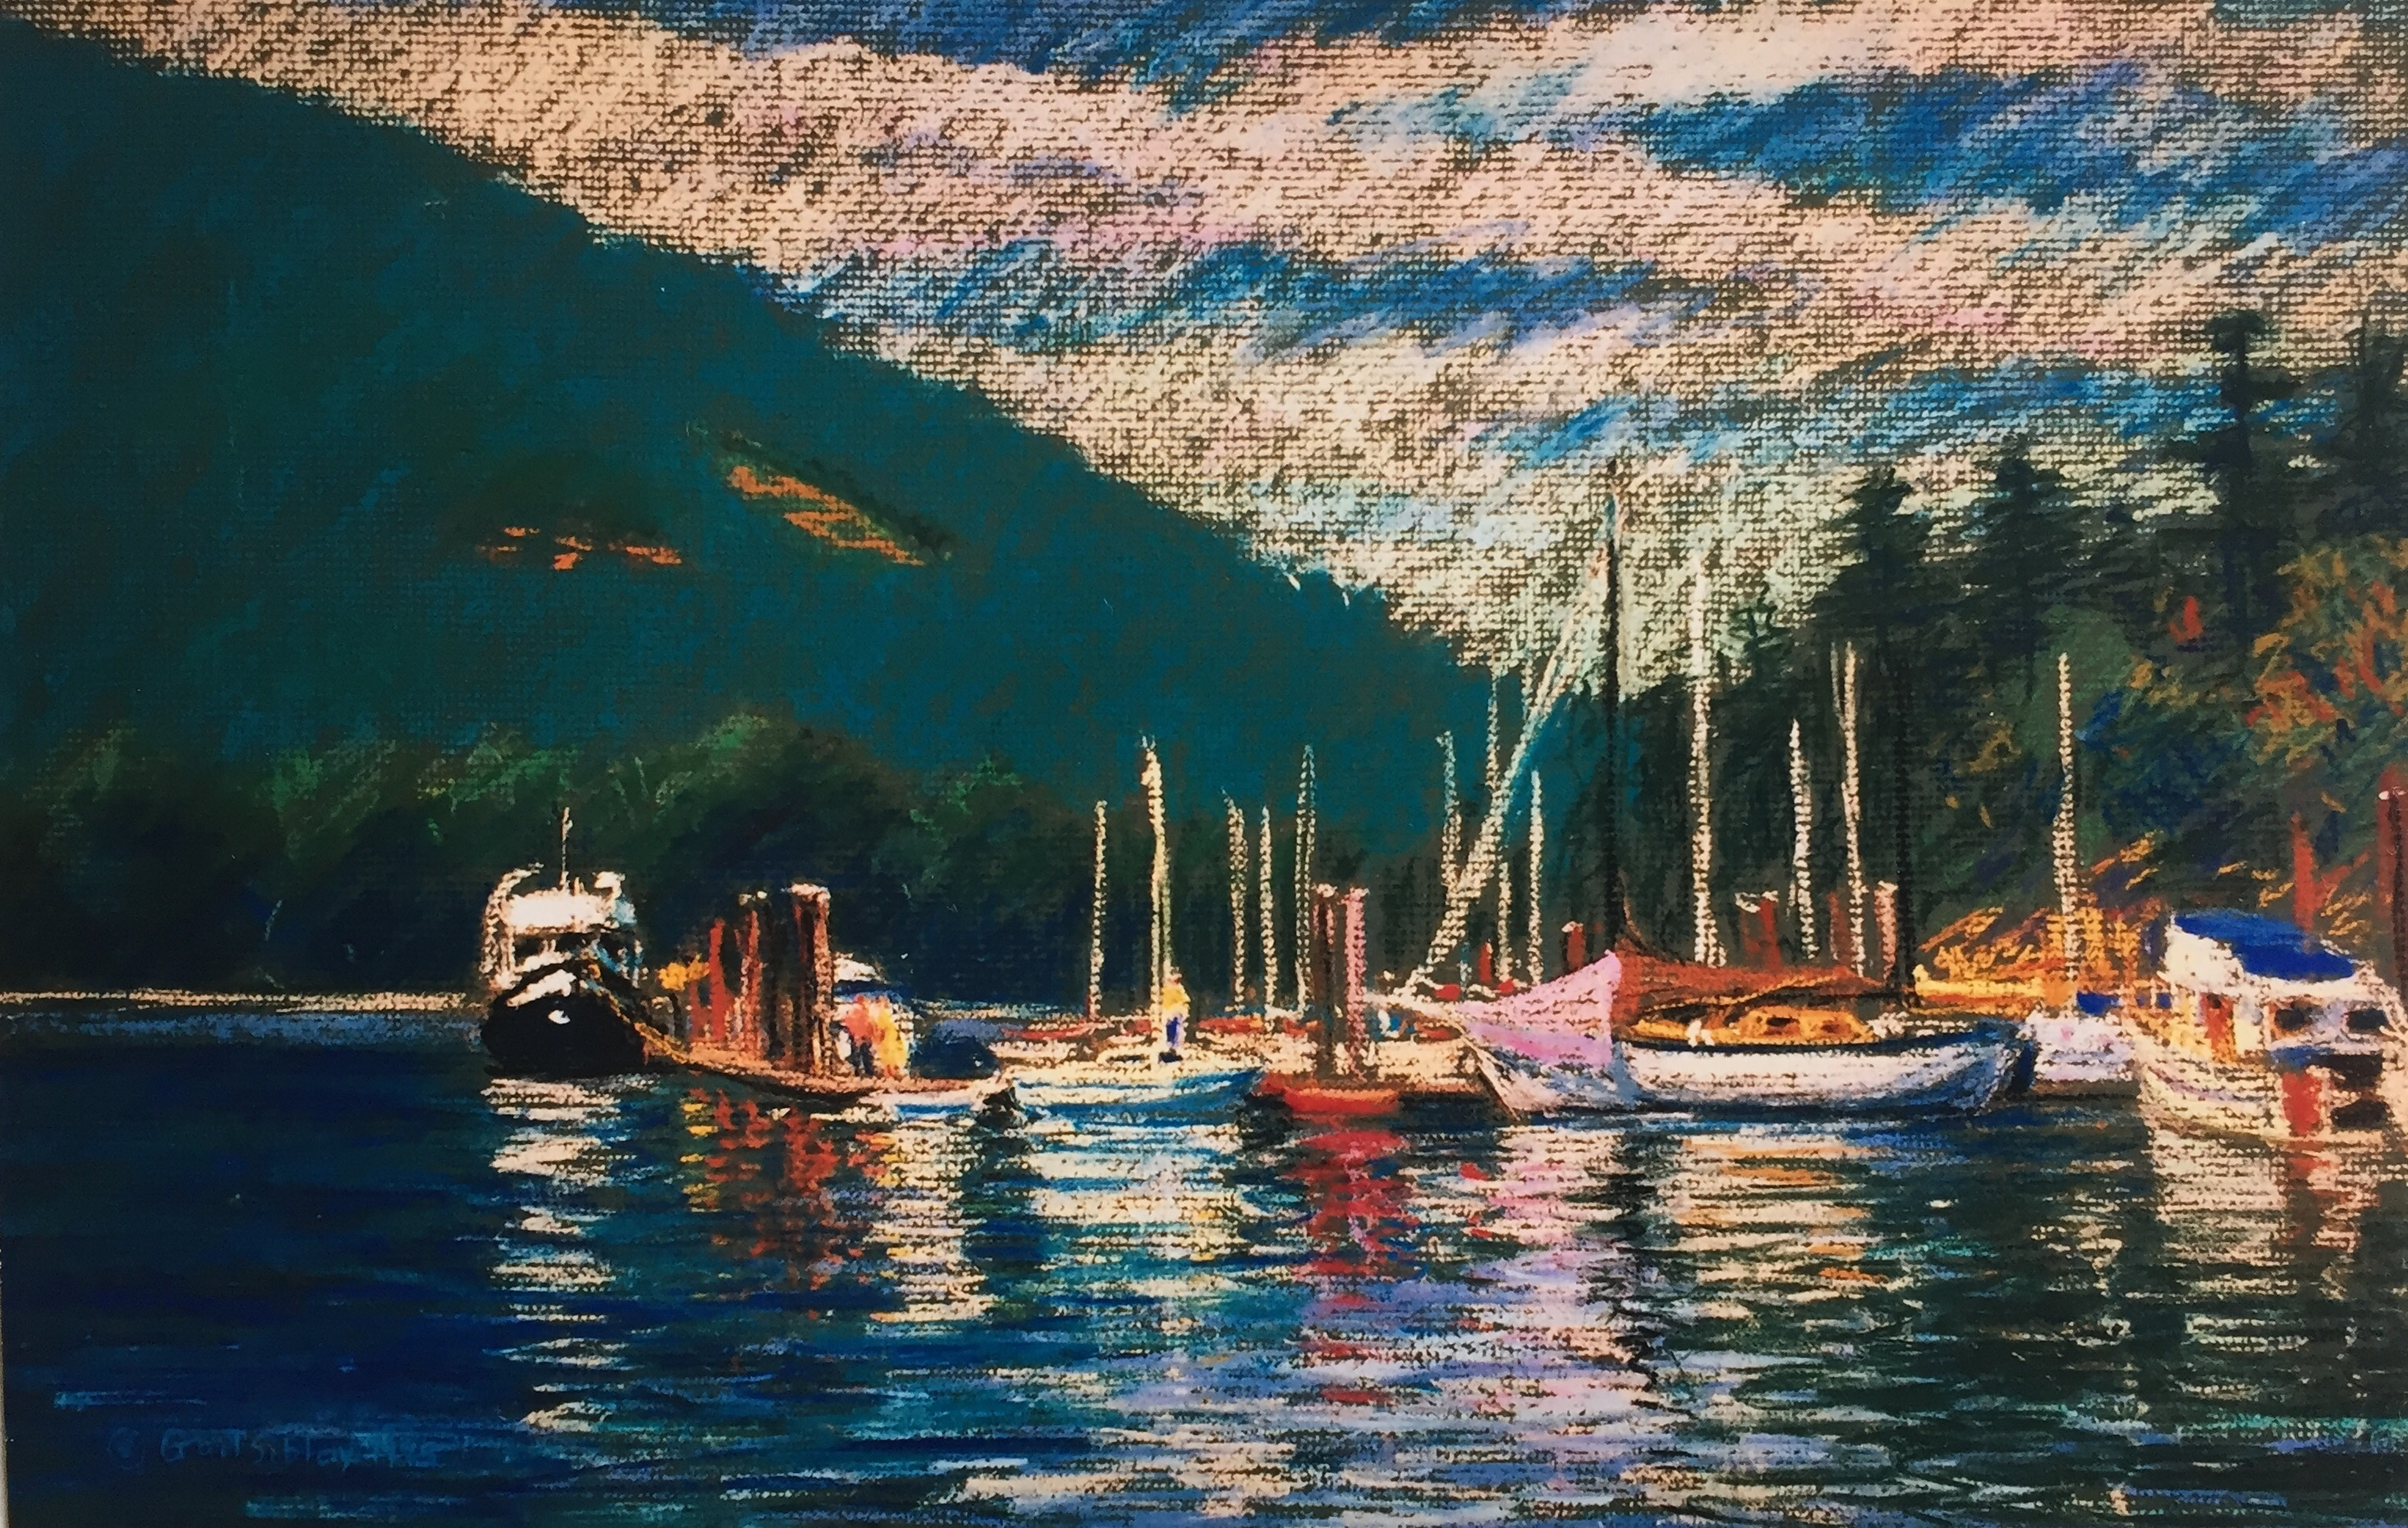 Finding your style: Gail Sibley, Fulford Harbour, c.1995, pastel on mat board, size unknown